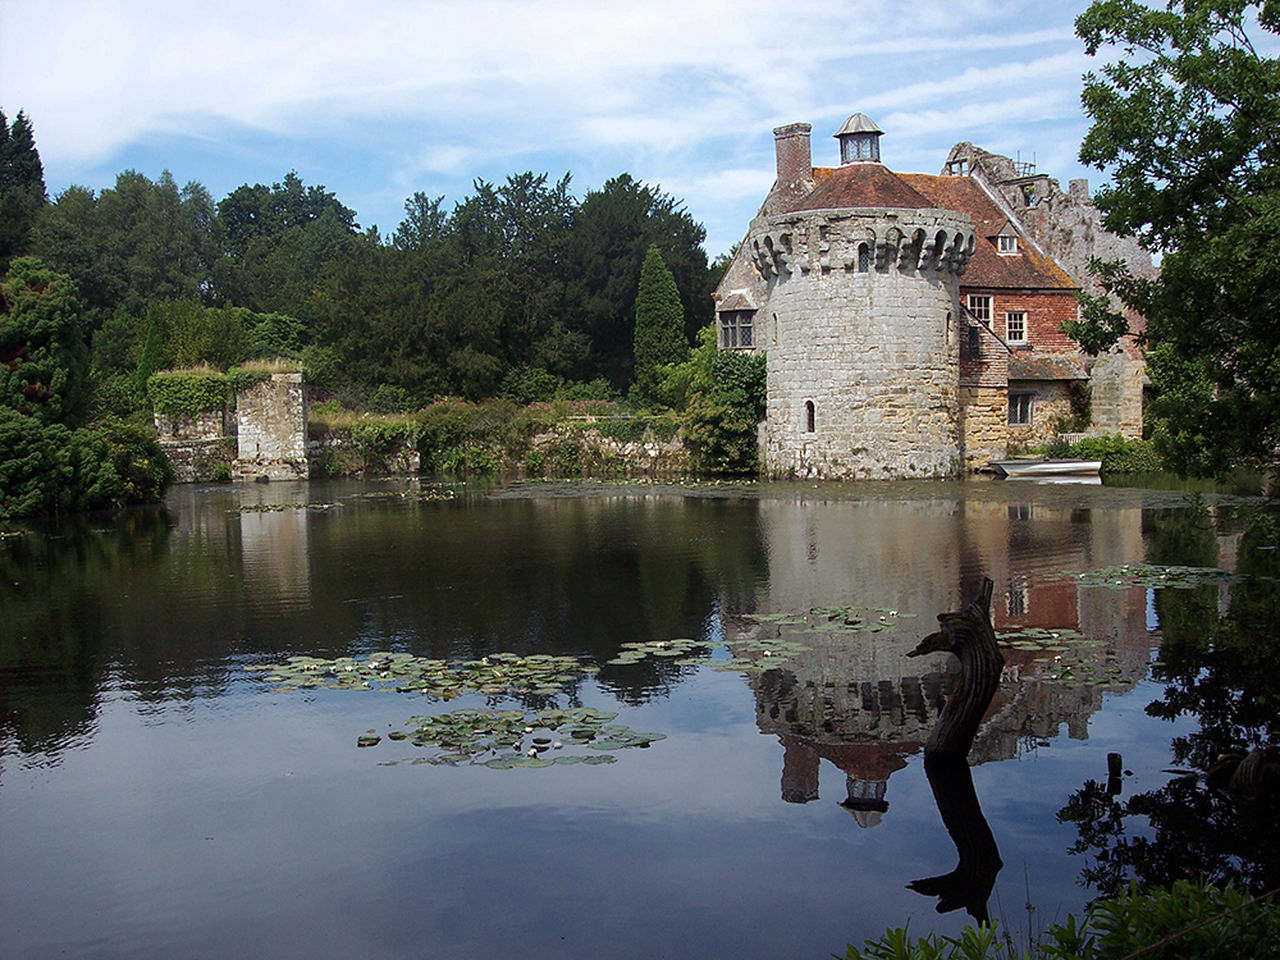 architecture, reflection, tree, history, built structure, water, building exterior, ancient, outdoors, day, no people, nature, sky